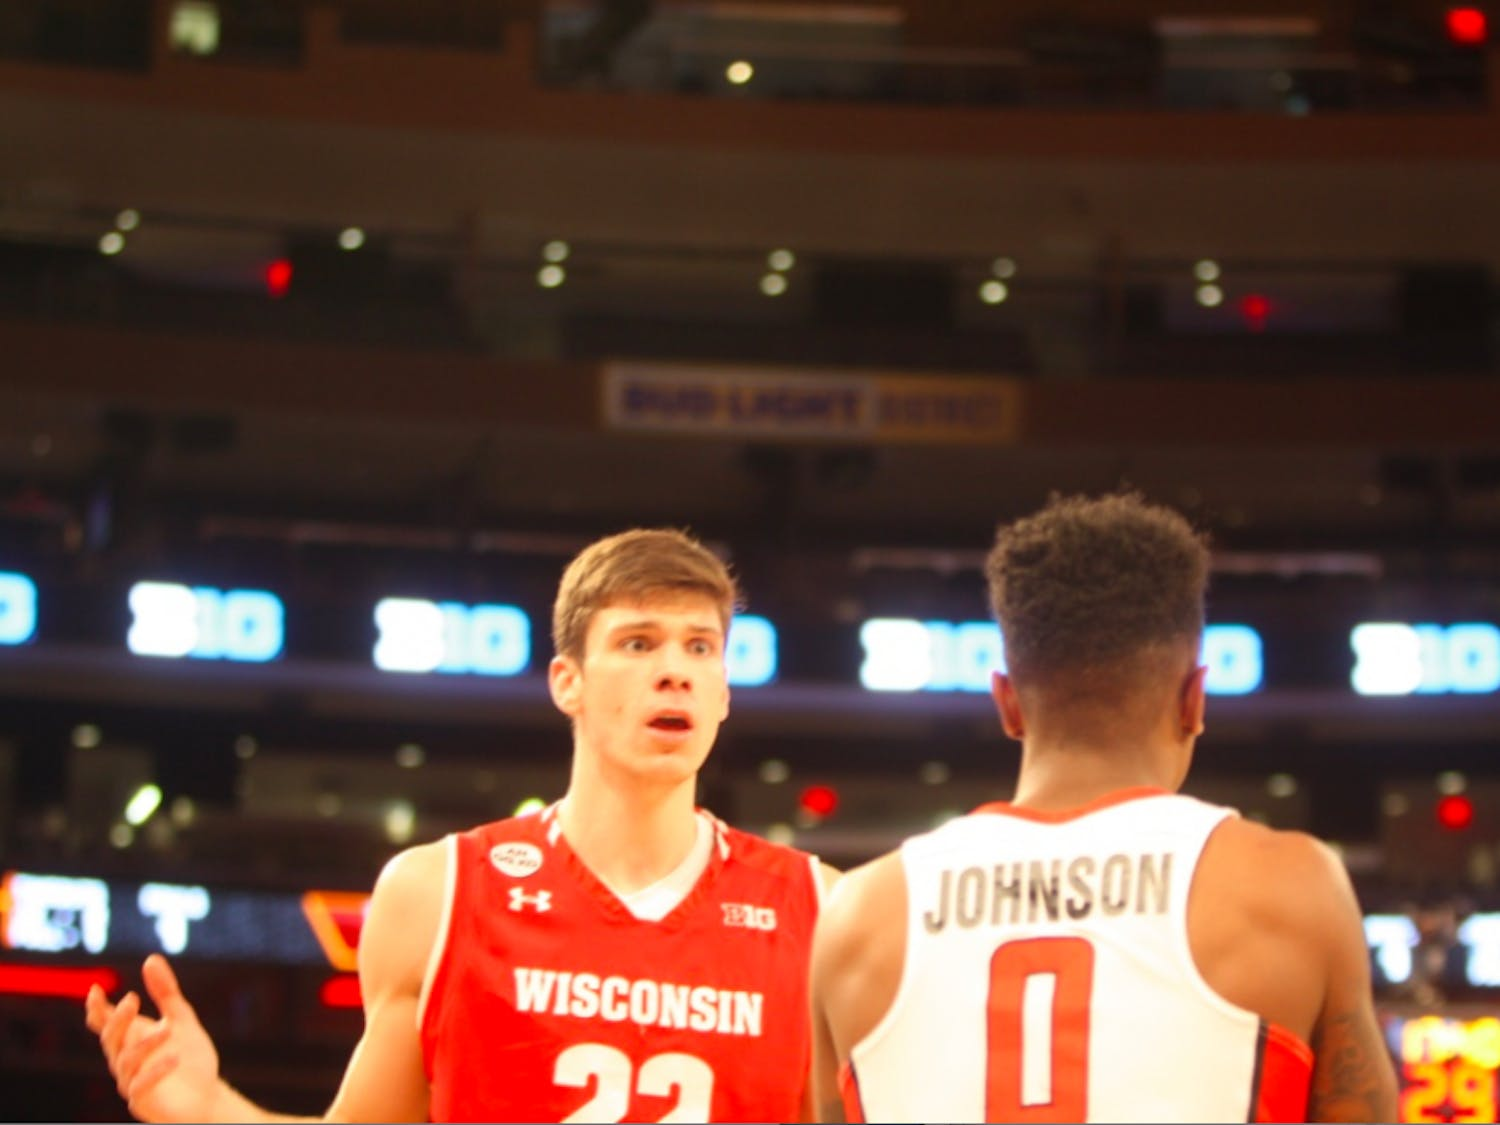 Despite this moment of frustration after a questionable call,Ethan Happ stole the show right around the corner from Broadway.